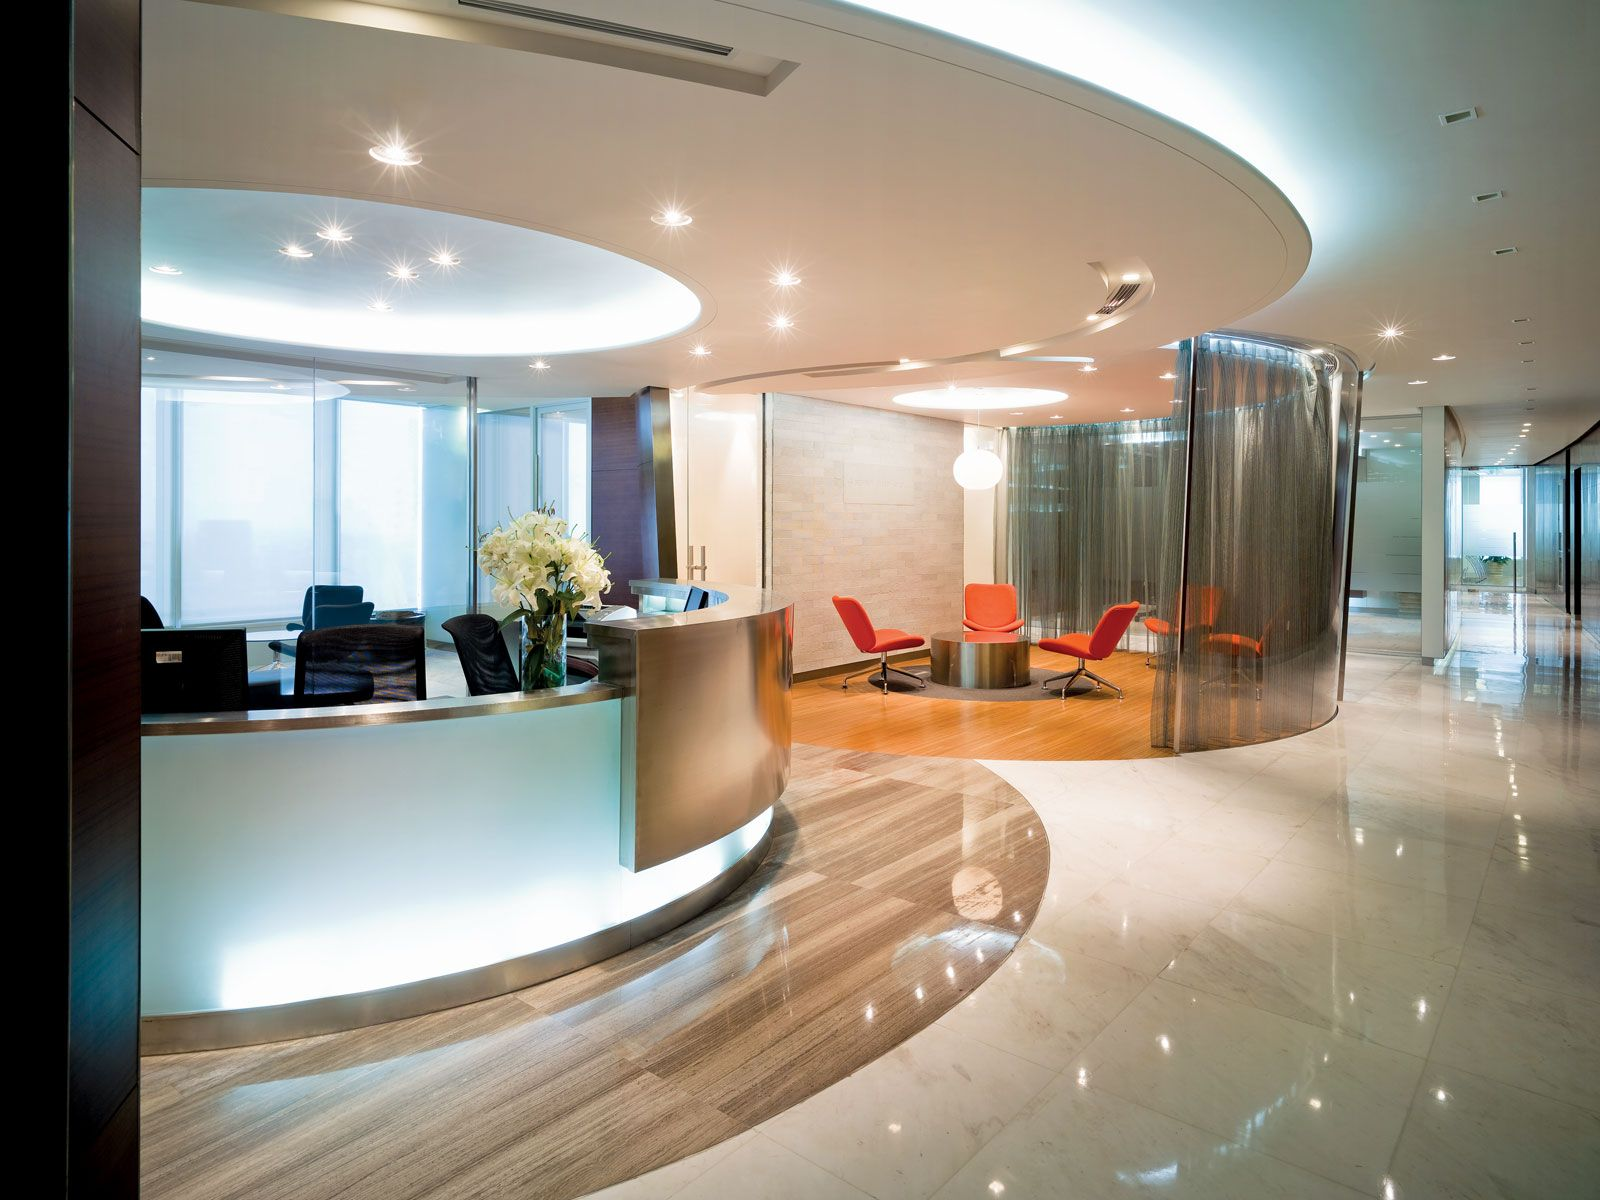 Executive Office Reception Design Modern Luxury Office Interior Reception Ideas With Round